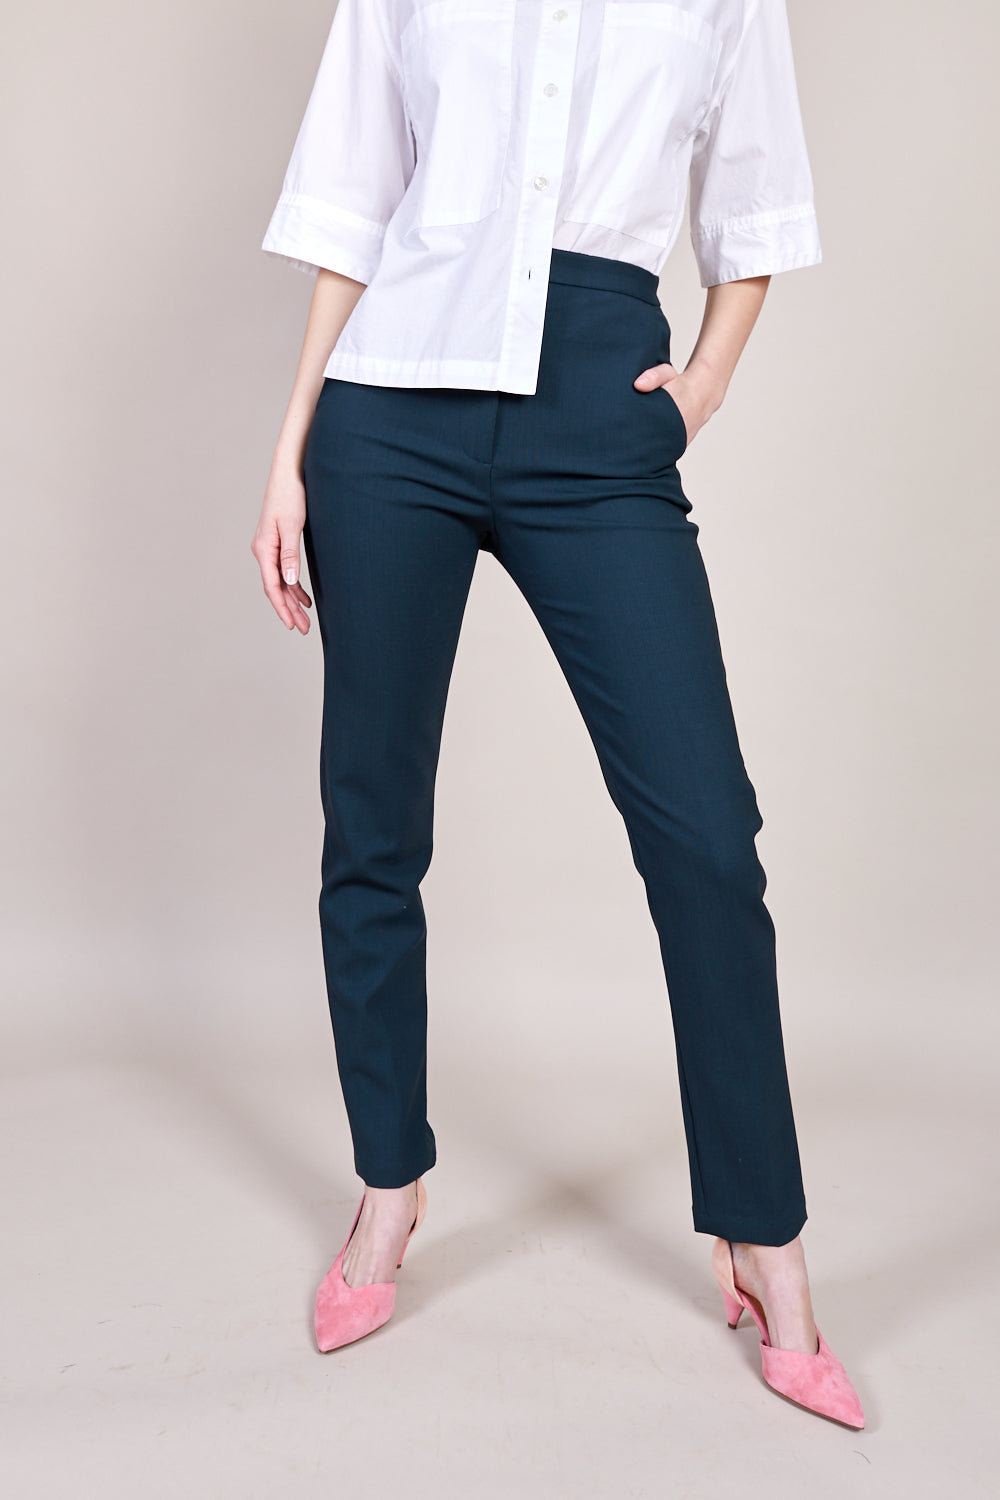 Morceau Pant in Dark Juniper